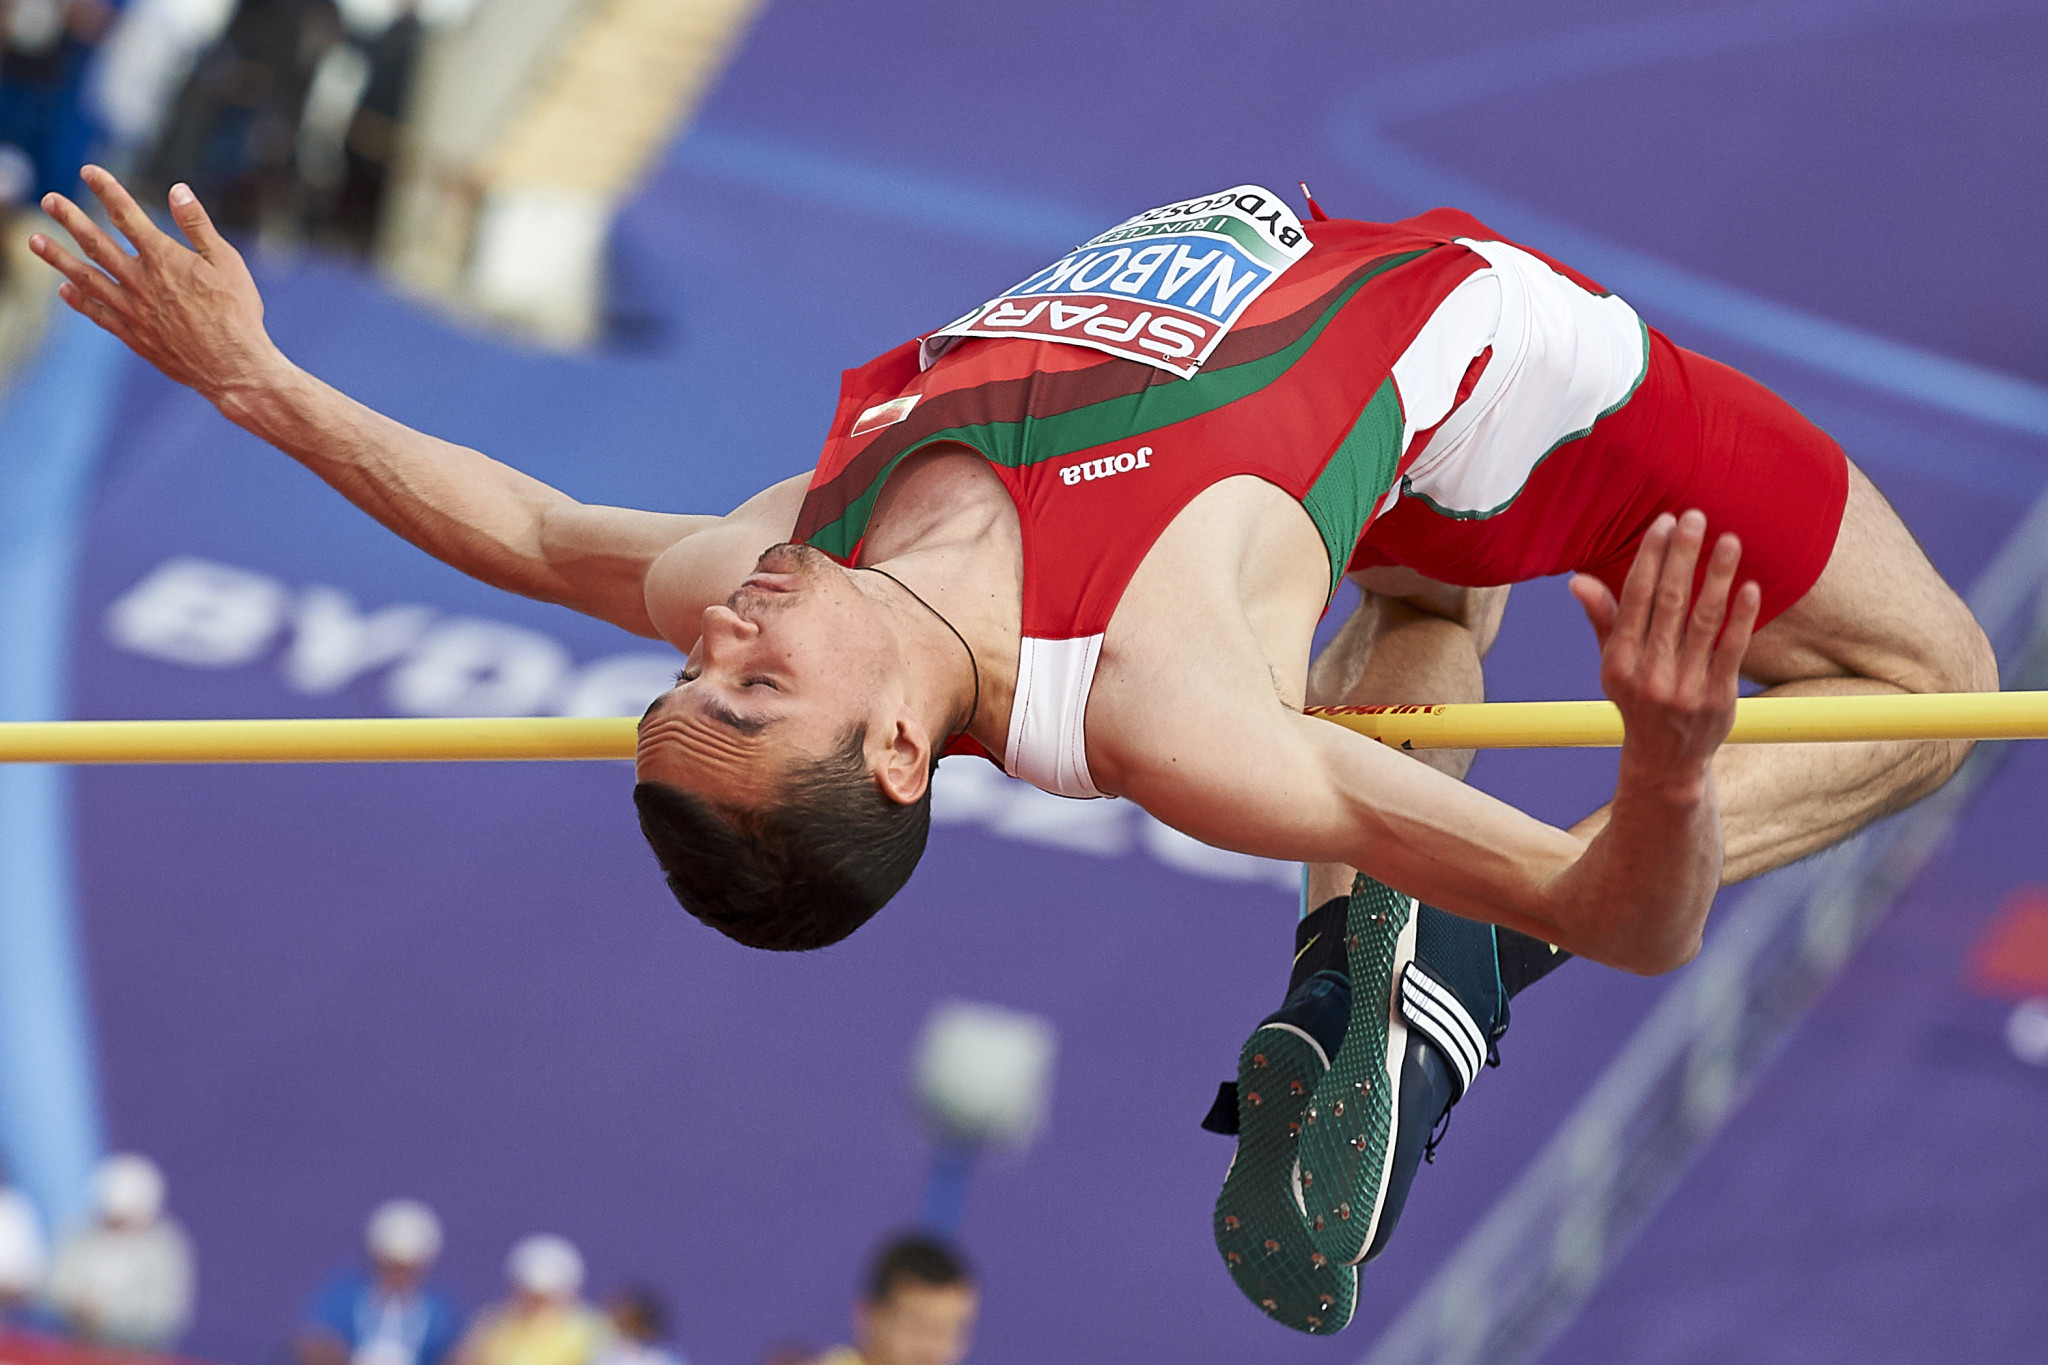 Belarus high jumper suspended for doping